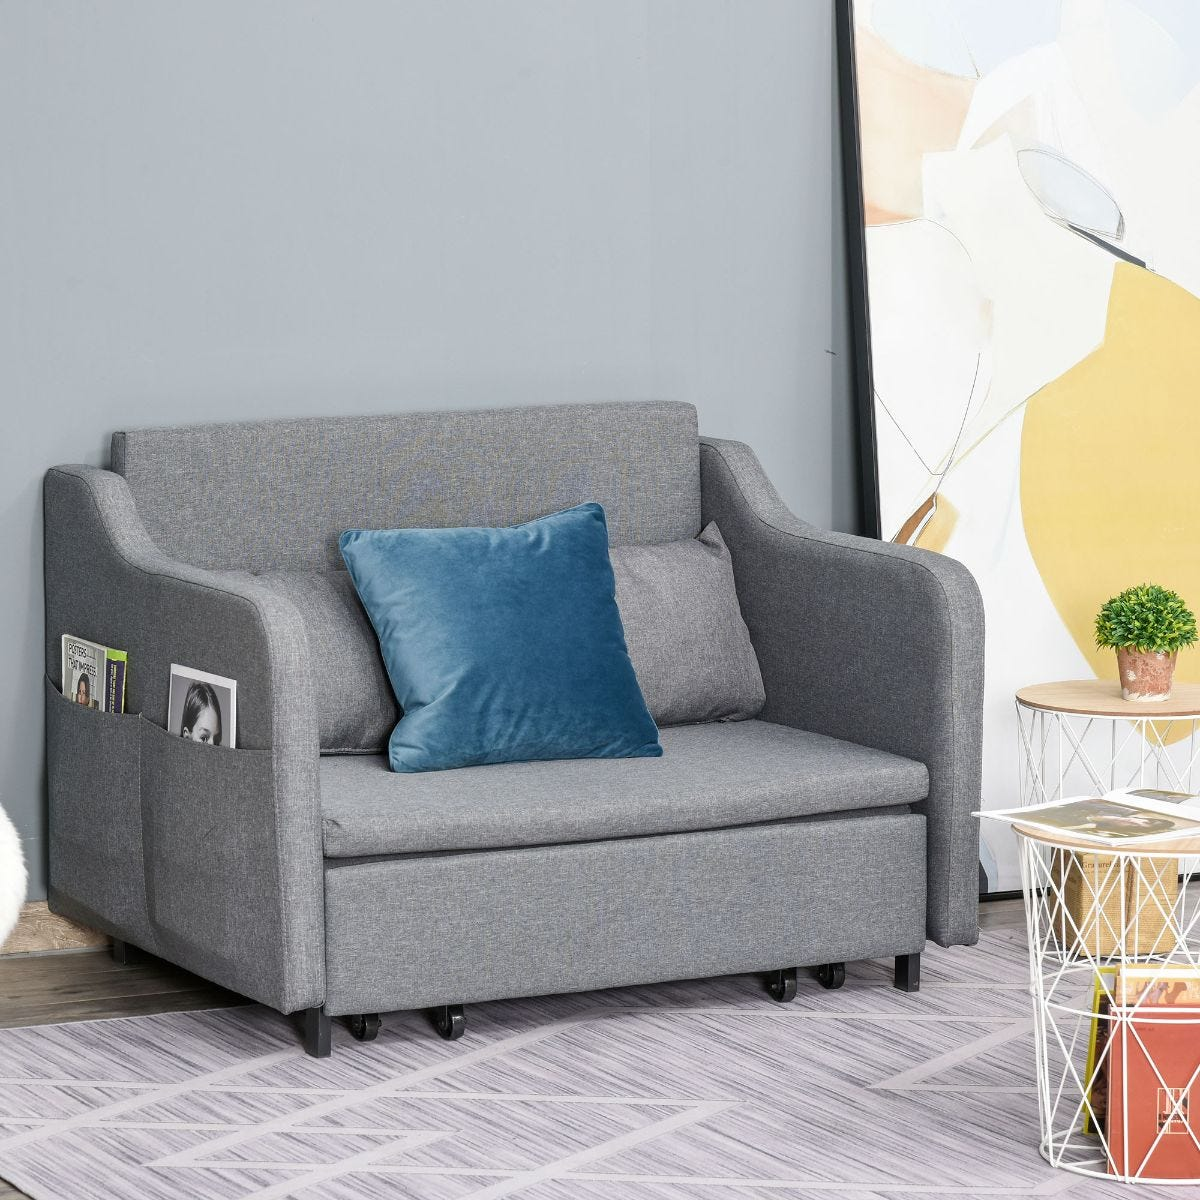 Loveseat Futon Couch Upholstery Sleeper Sofa Bed With 2 Pillow Living Room